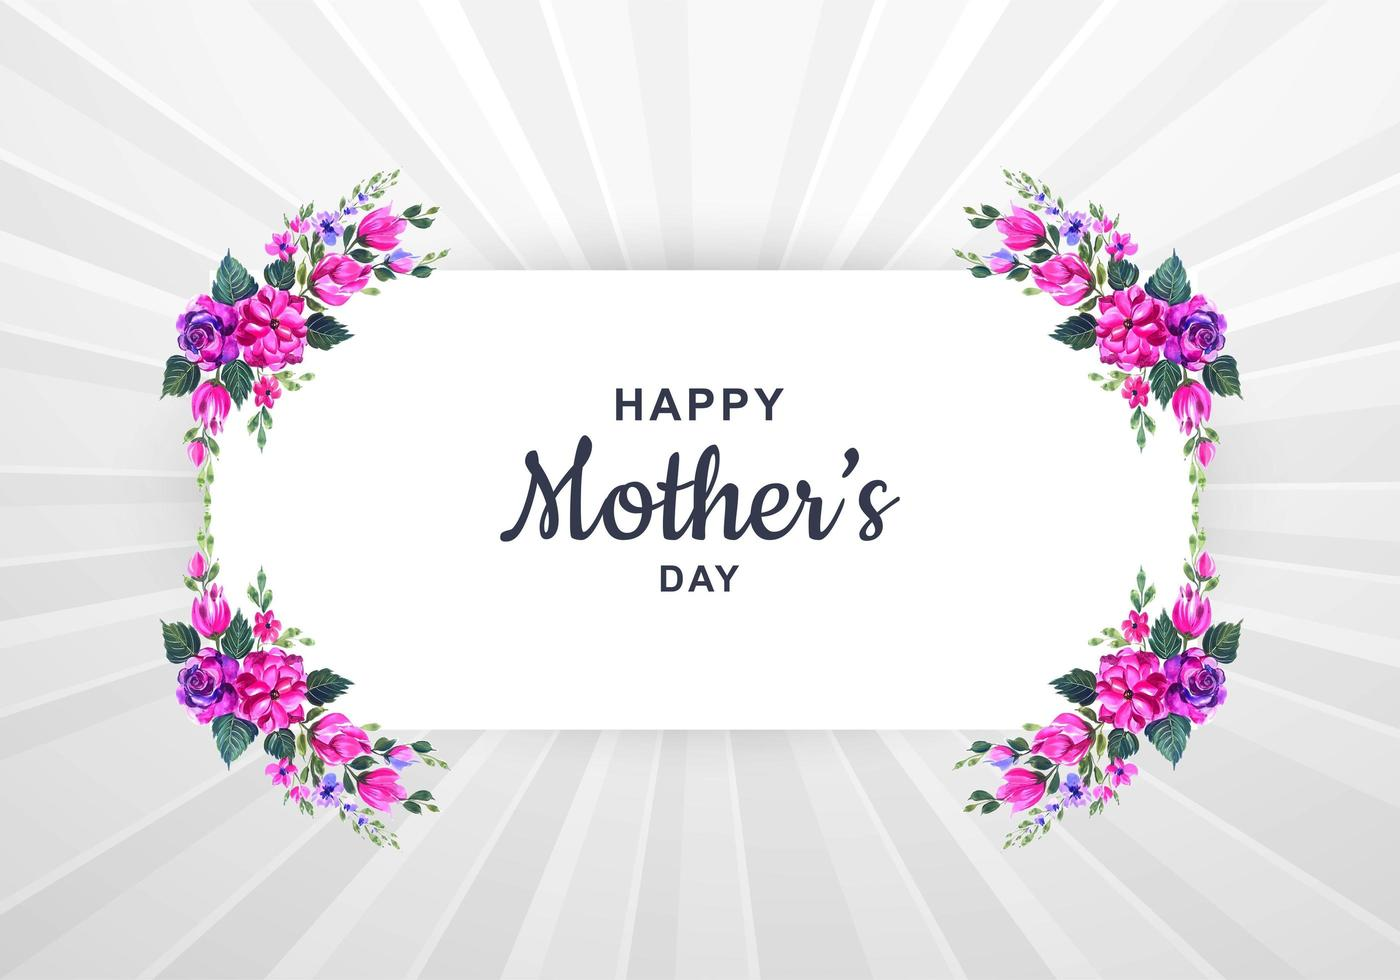 Mother's Day card with watercolor floral frame vector